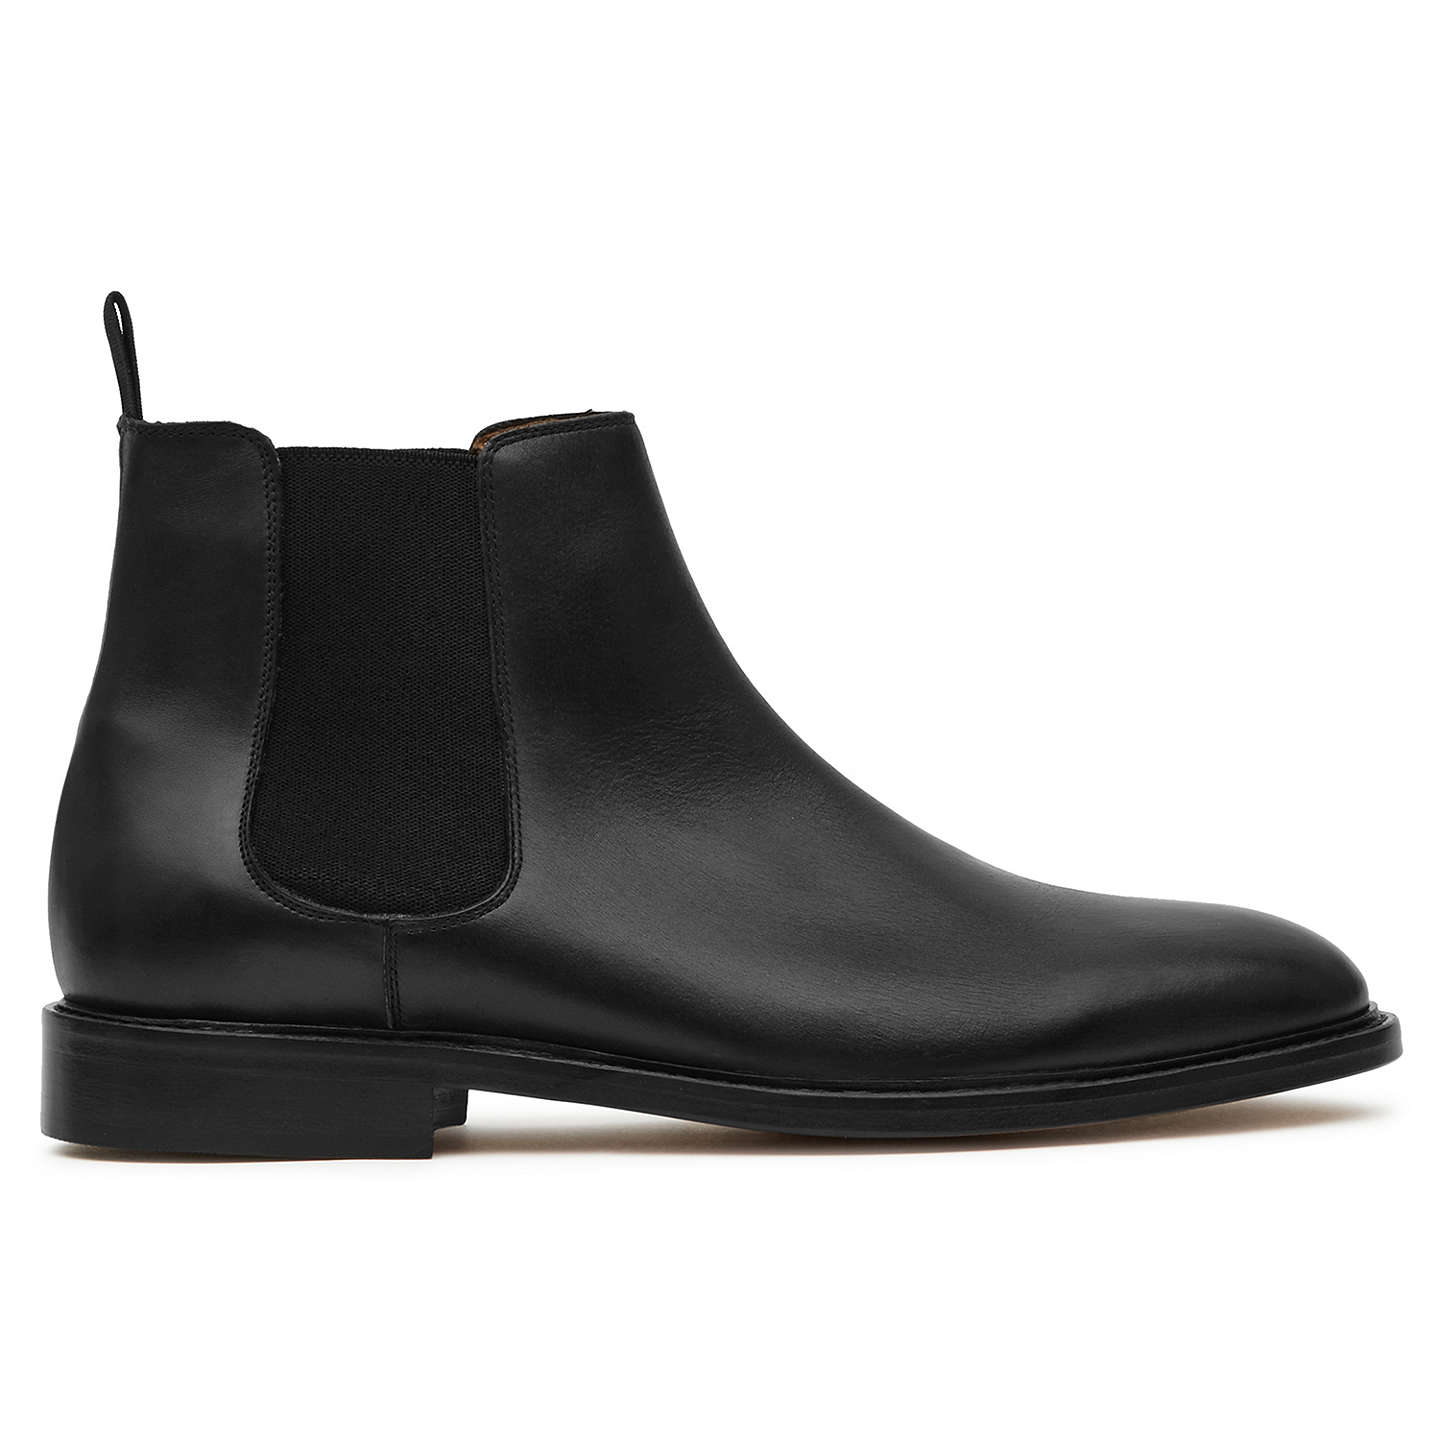 Reiss Tenor Leather - Leather Chelsea Boots in Black, Mens